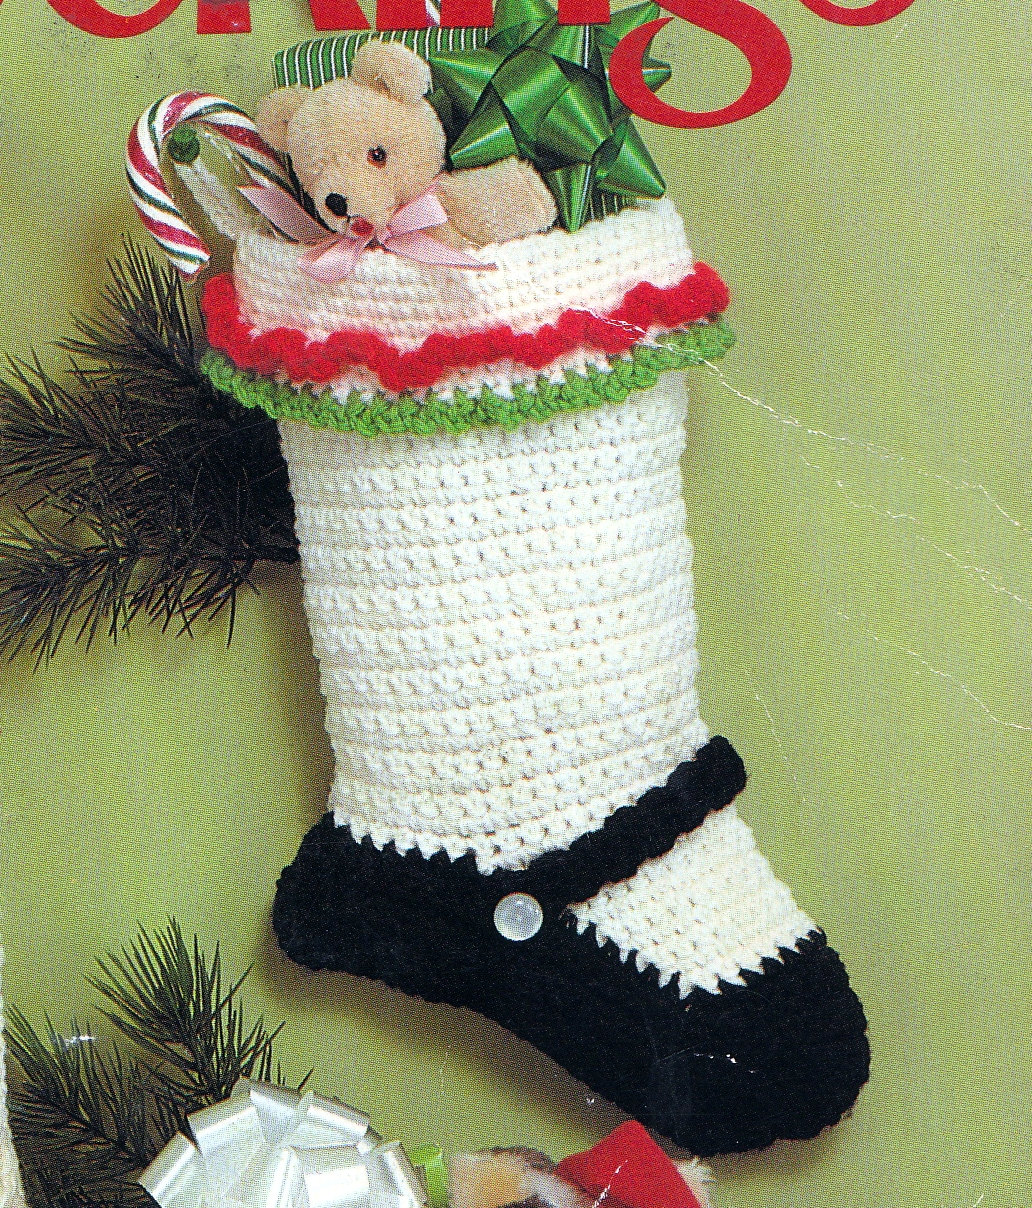 Crochet Christmas stockings – Decorate with Crochet Christmas ...